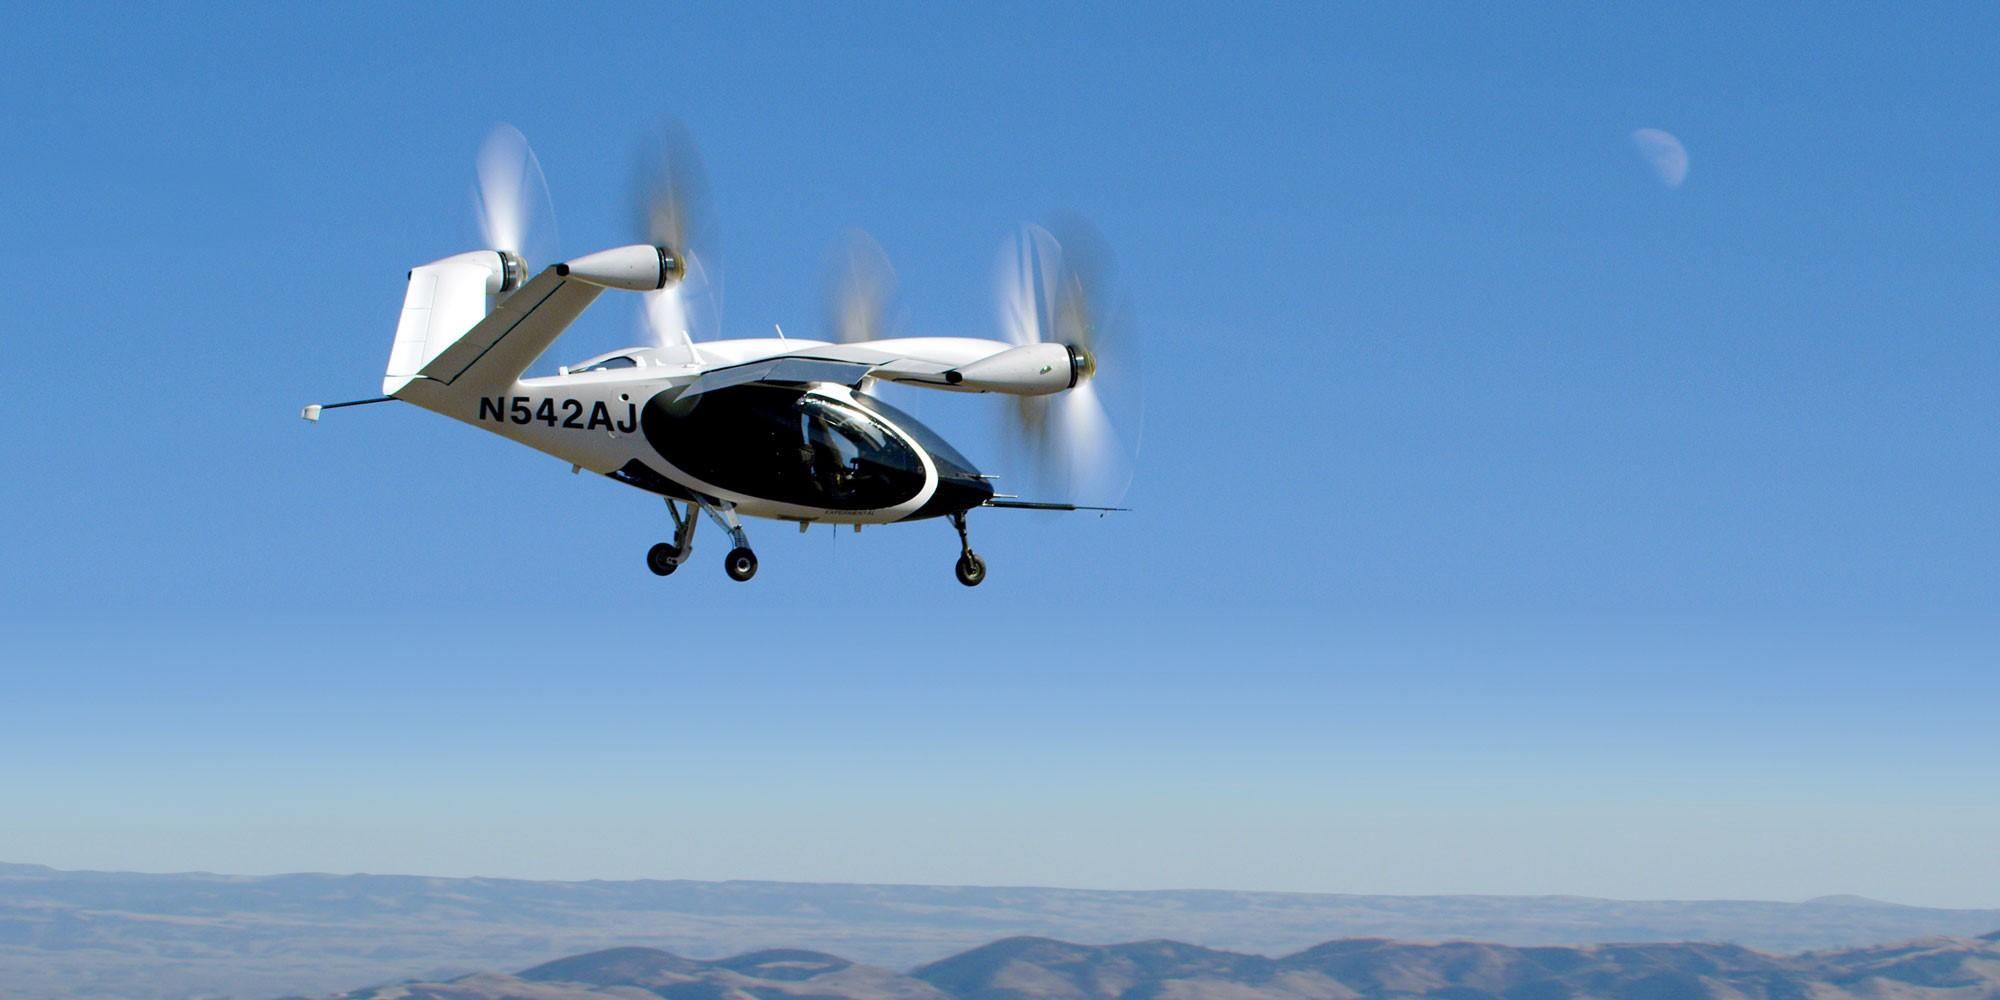 Joby Aviation is one of several front runners in the race to launch air taxi services with eVTOL aircraft in cities such as Los Angeles.